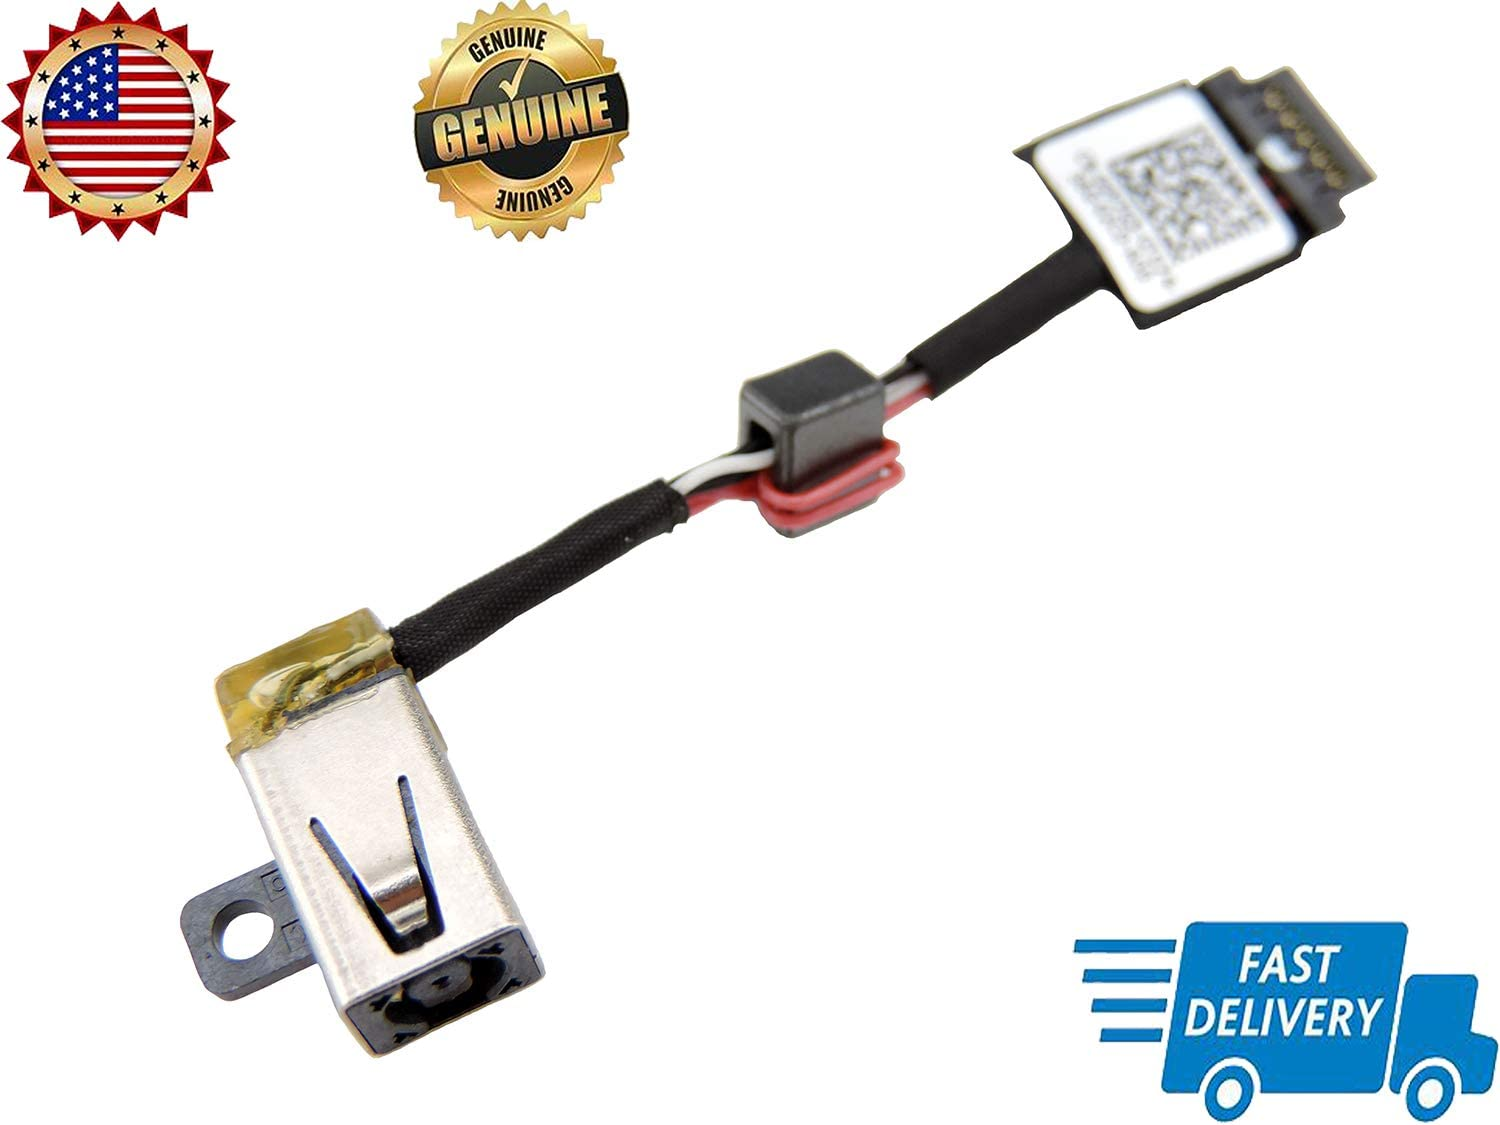 P//N: 0P7G3 CN-00P7G3 2015 13 9343 9350 9350-80 computerparts2016 Original New Ac Dc in Power Jack Cable Harness Connector Socket Replacement for Dell XPS